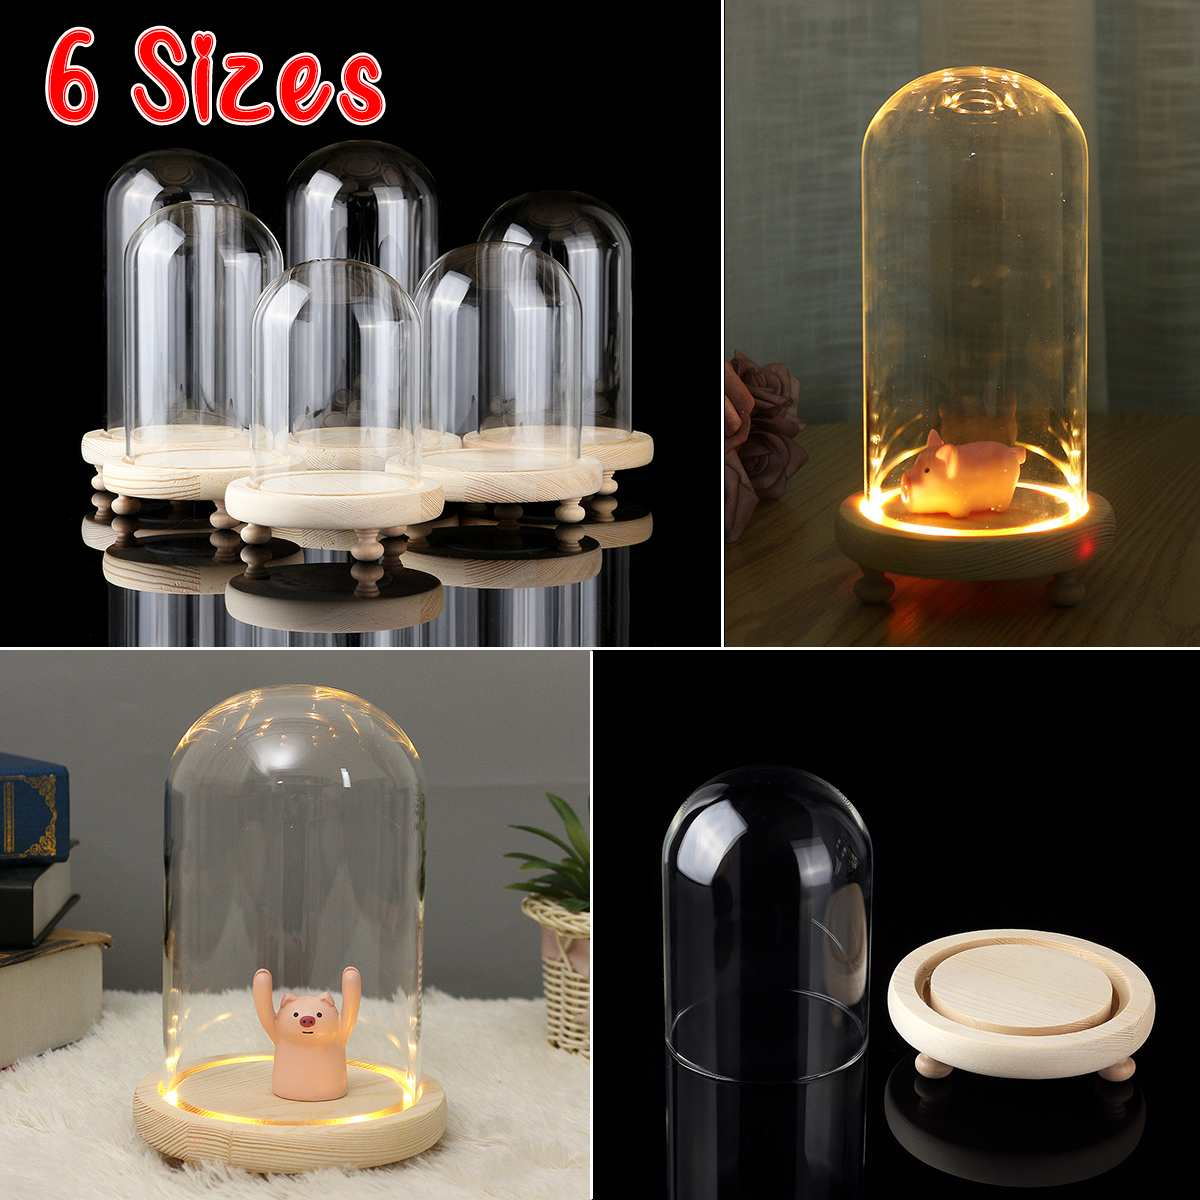 6 Style Decoration Glass Dome Display Bell Jar Cloche Wooden Base  Light Dust Cover DIY Gift For LED Light